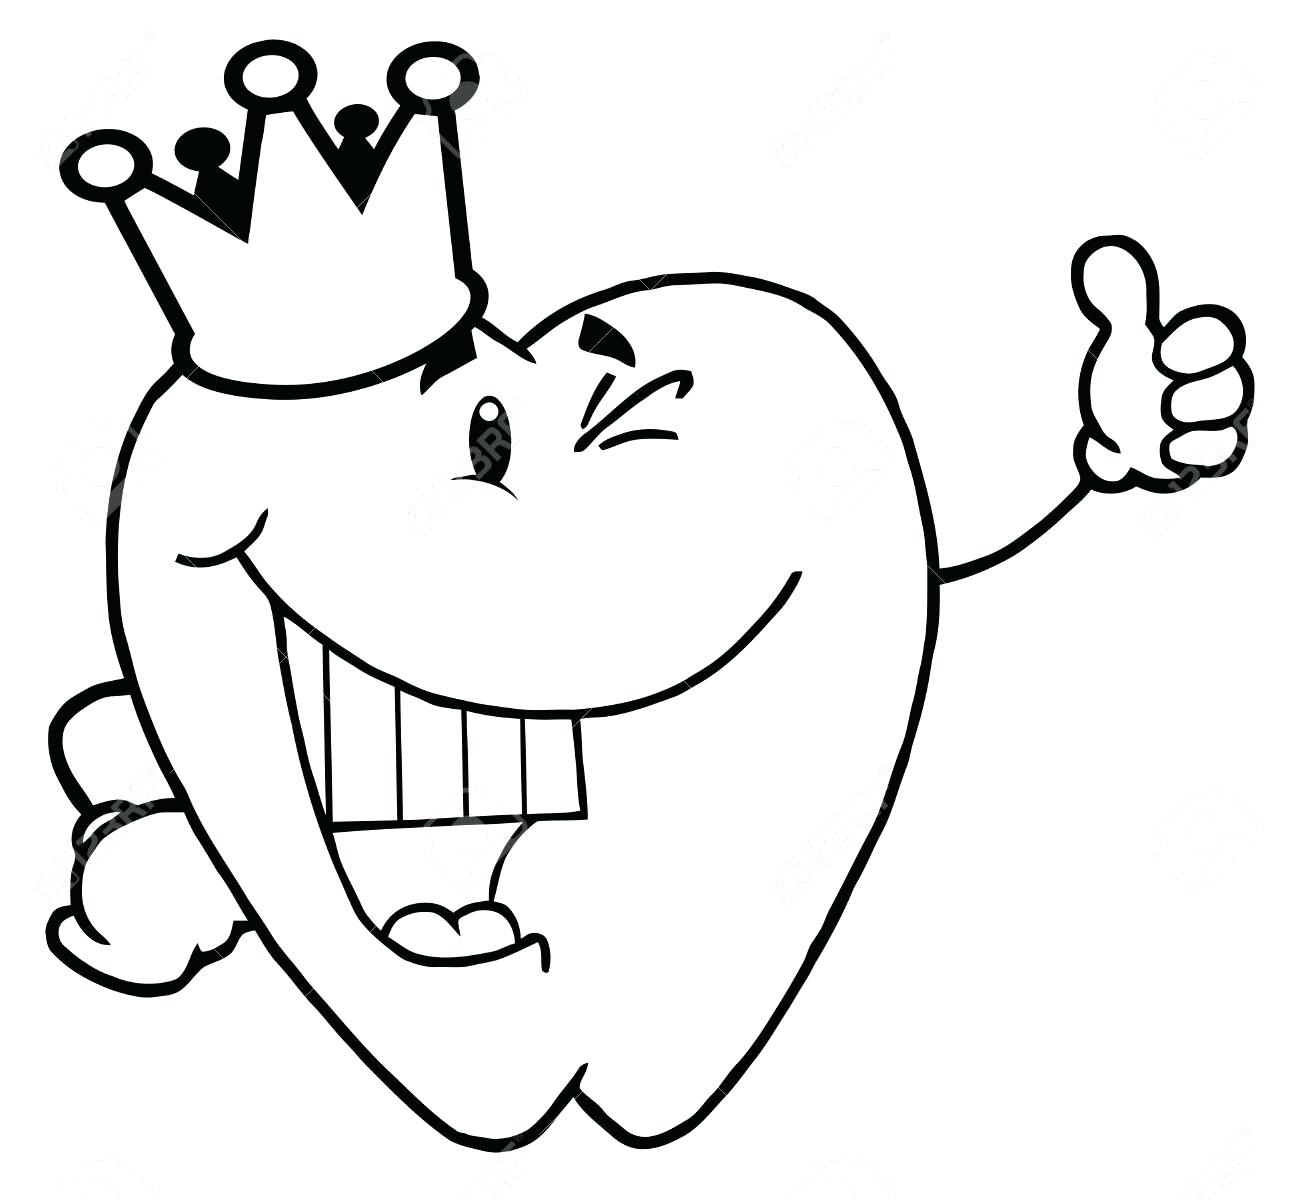 Coloring Pages tooth Coloring Pages Dental Health for Preschoolers ...